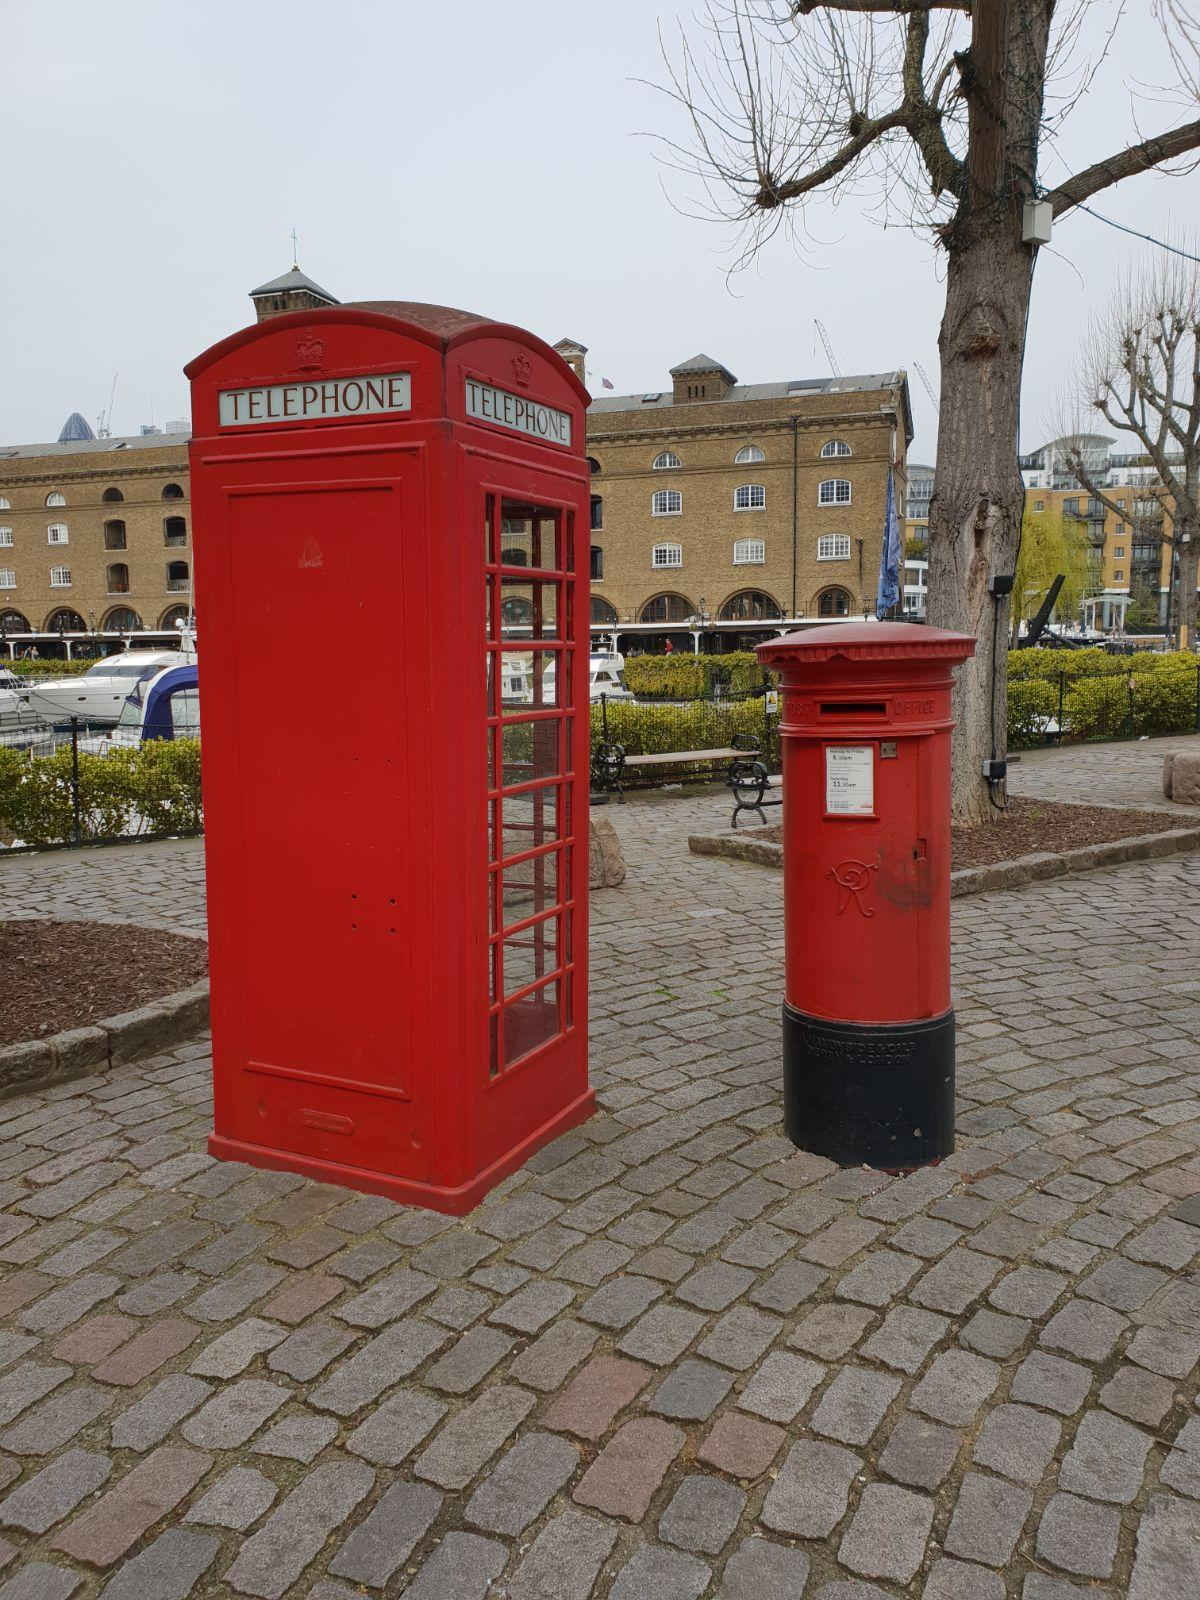 A photograph of a red telephone box beside a red post box